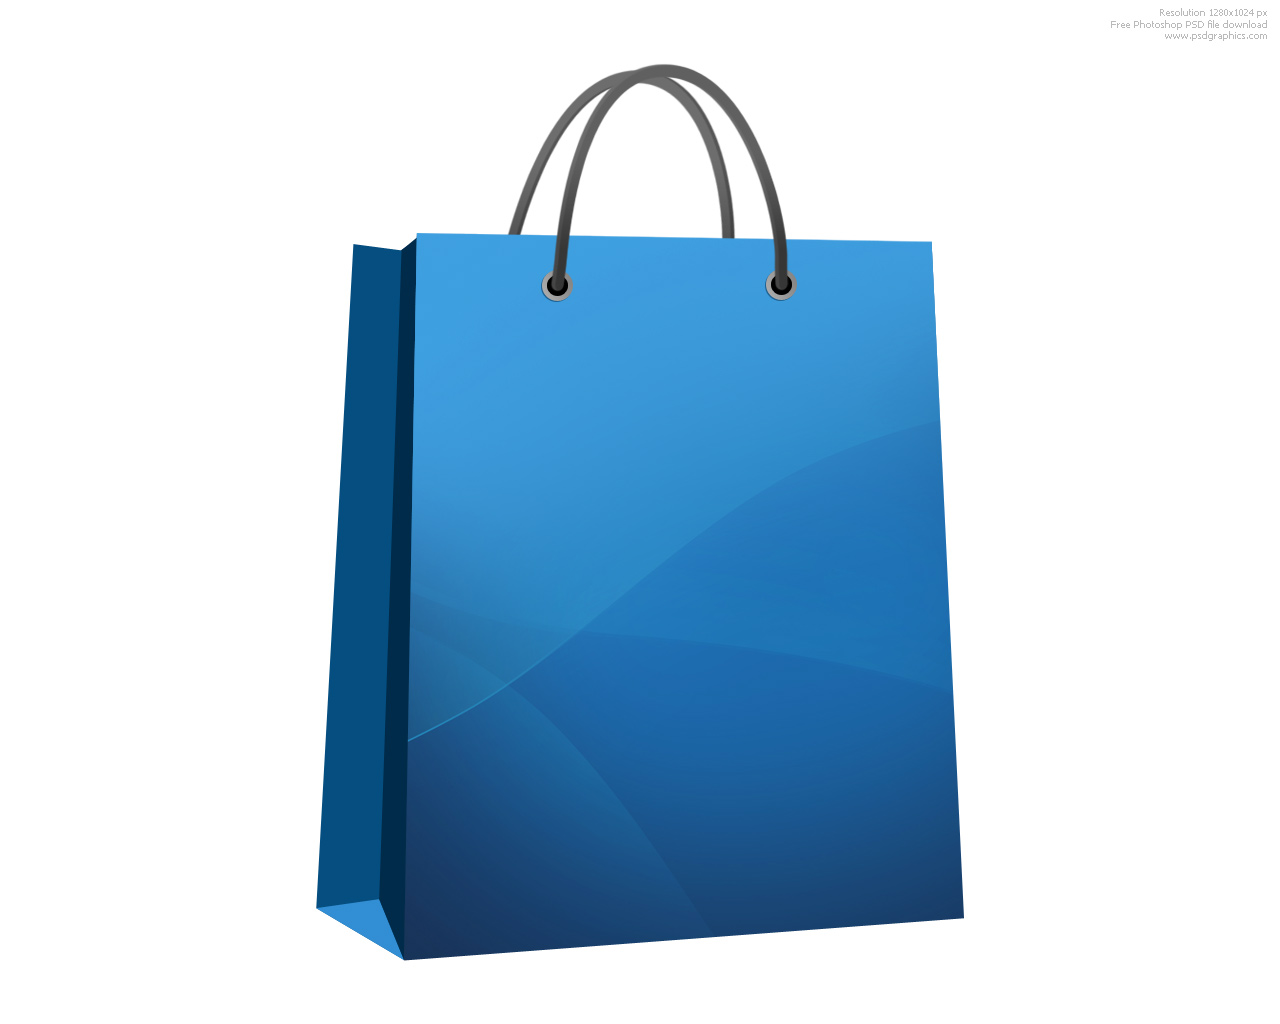 Shopping bag pictures clipart jpg freeuse download Free Pictures Of Shopping Bags, Download Free Clip Art, Free ... jpg freeuse download